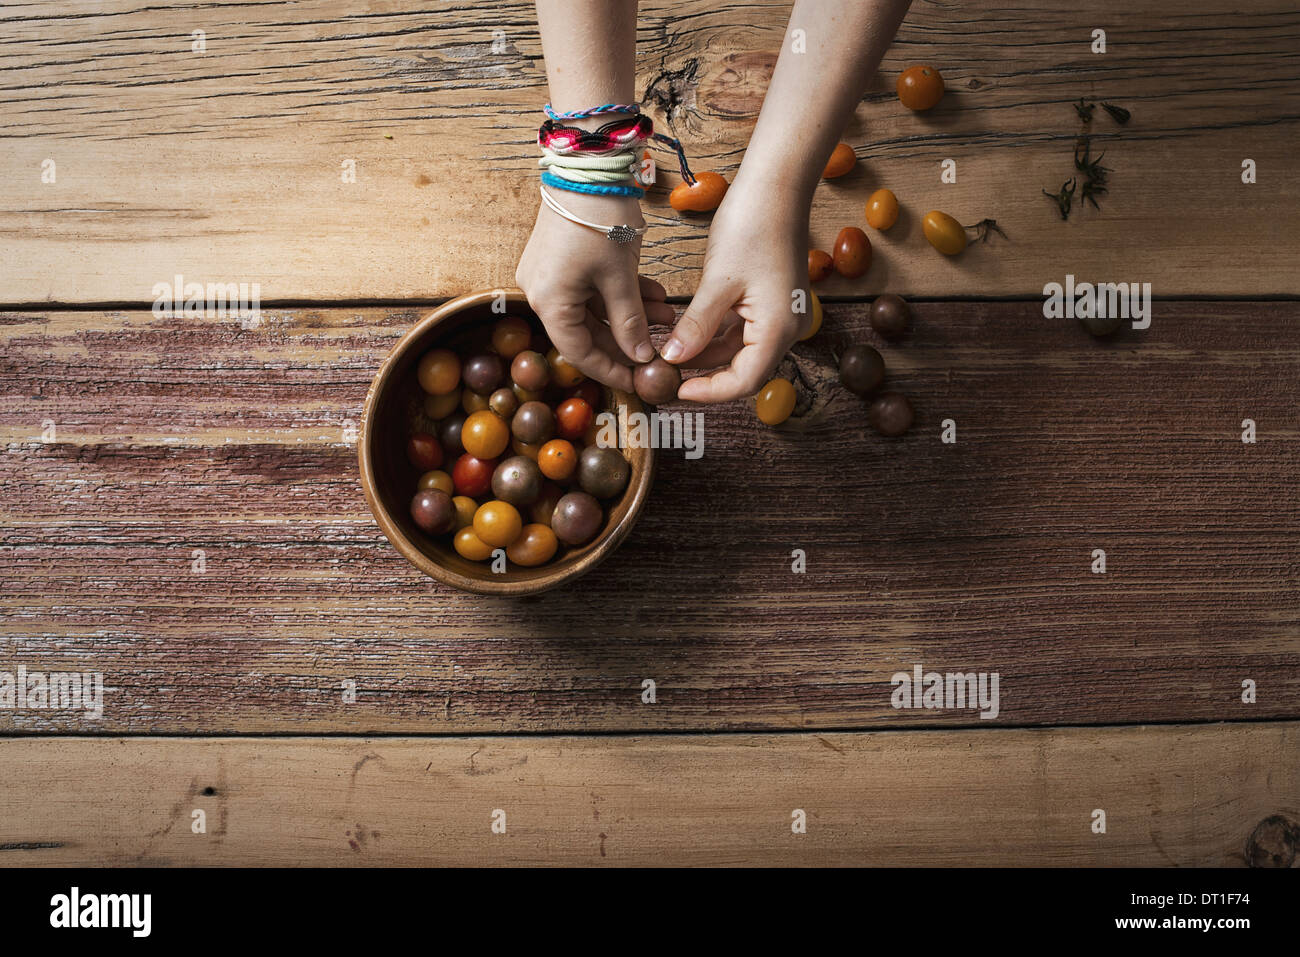 A round bowl with small tomatoes of various colours and a person sorting and picking over them A wooden tabletop - Stock Image